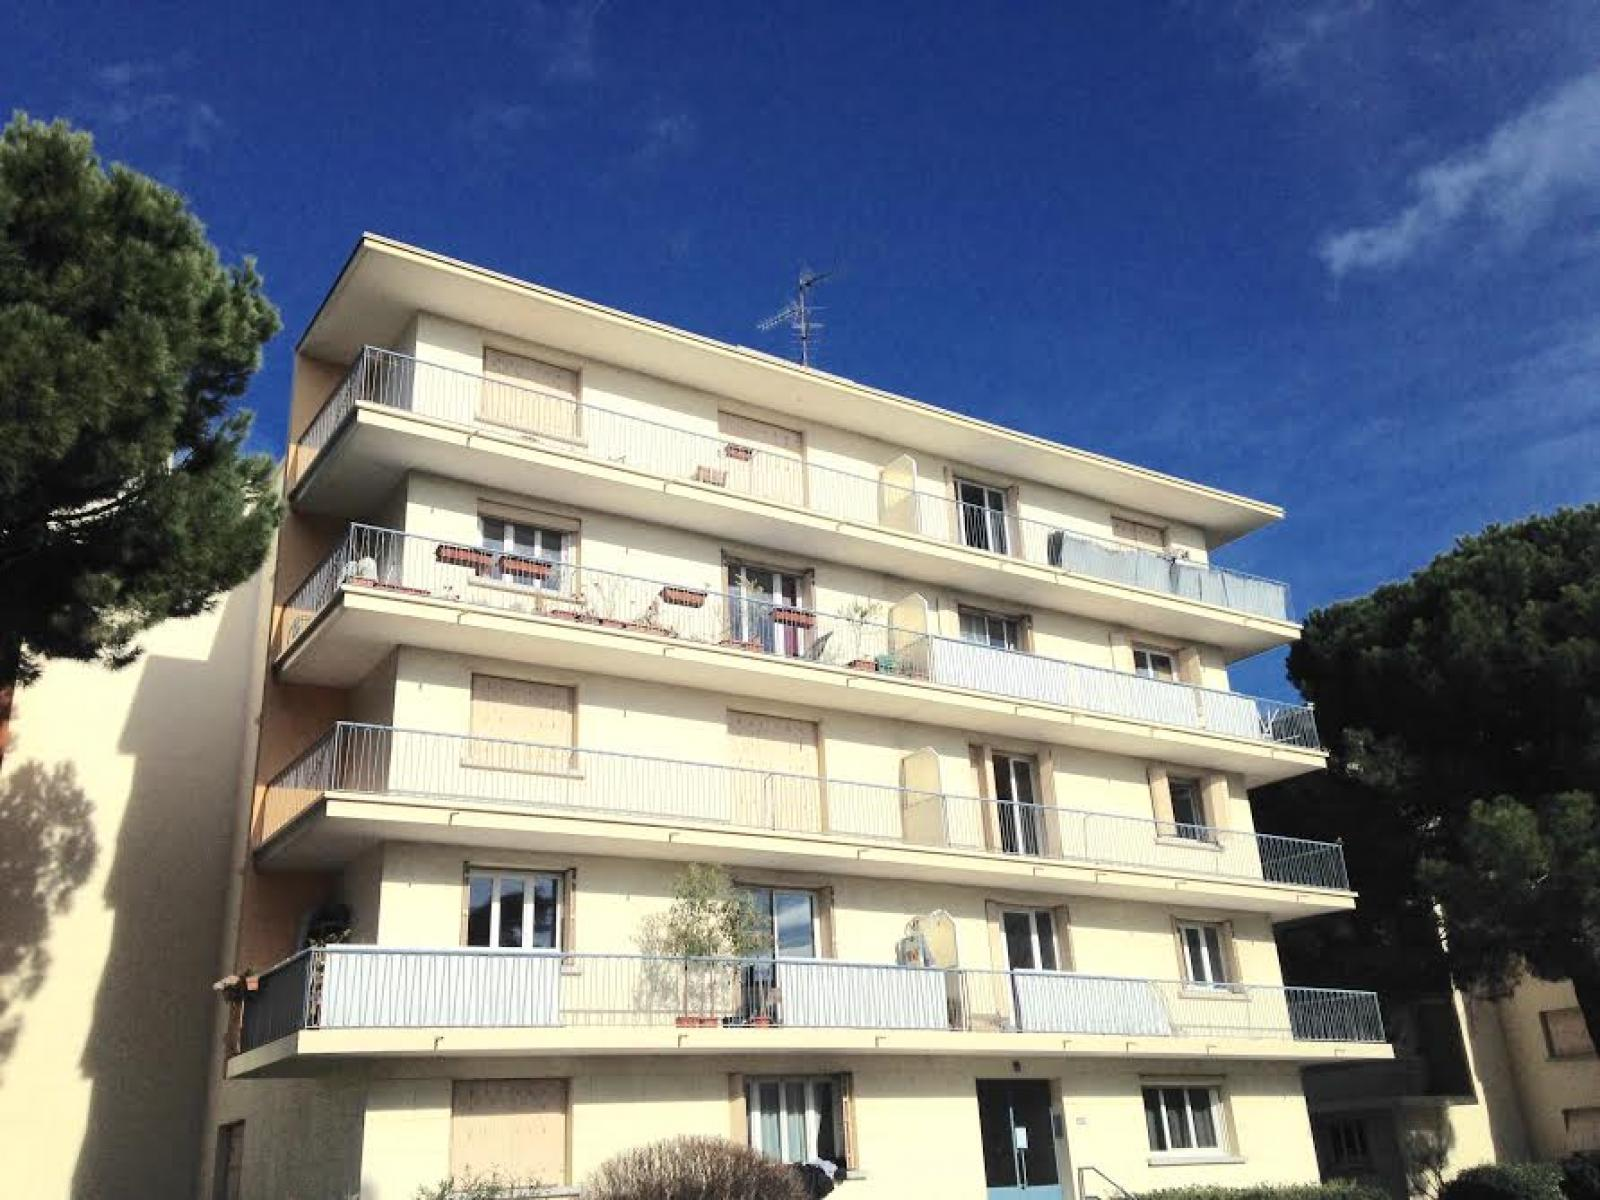 Annonce vente appartement montpellier 34000 58 m 128 for Annonce vente appartement